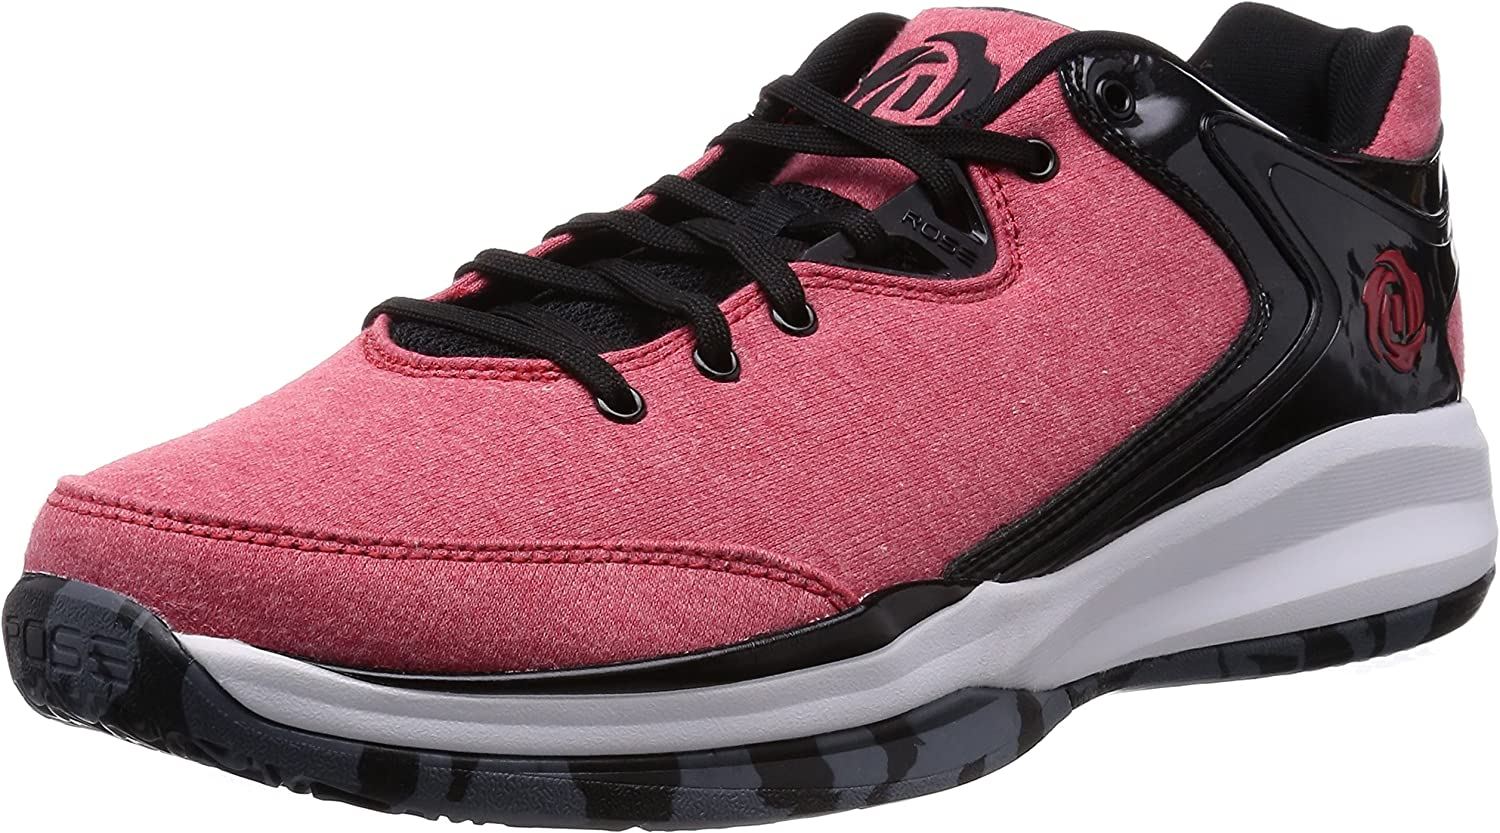 Adidas D pink Englewood Iii, Black red White, 8 M Us